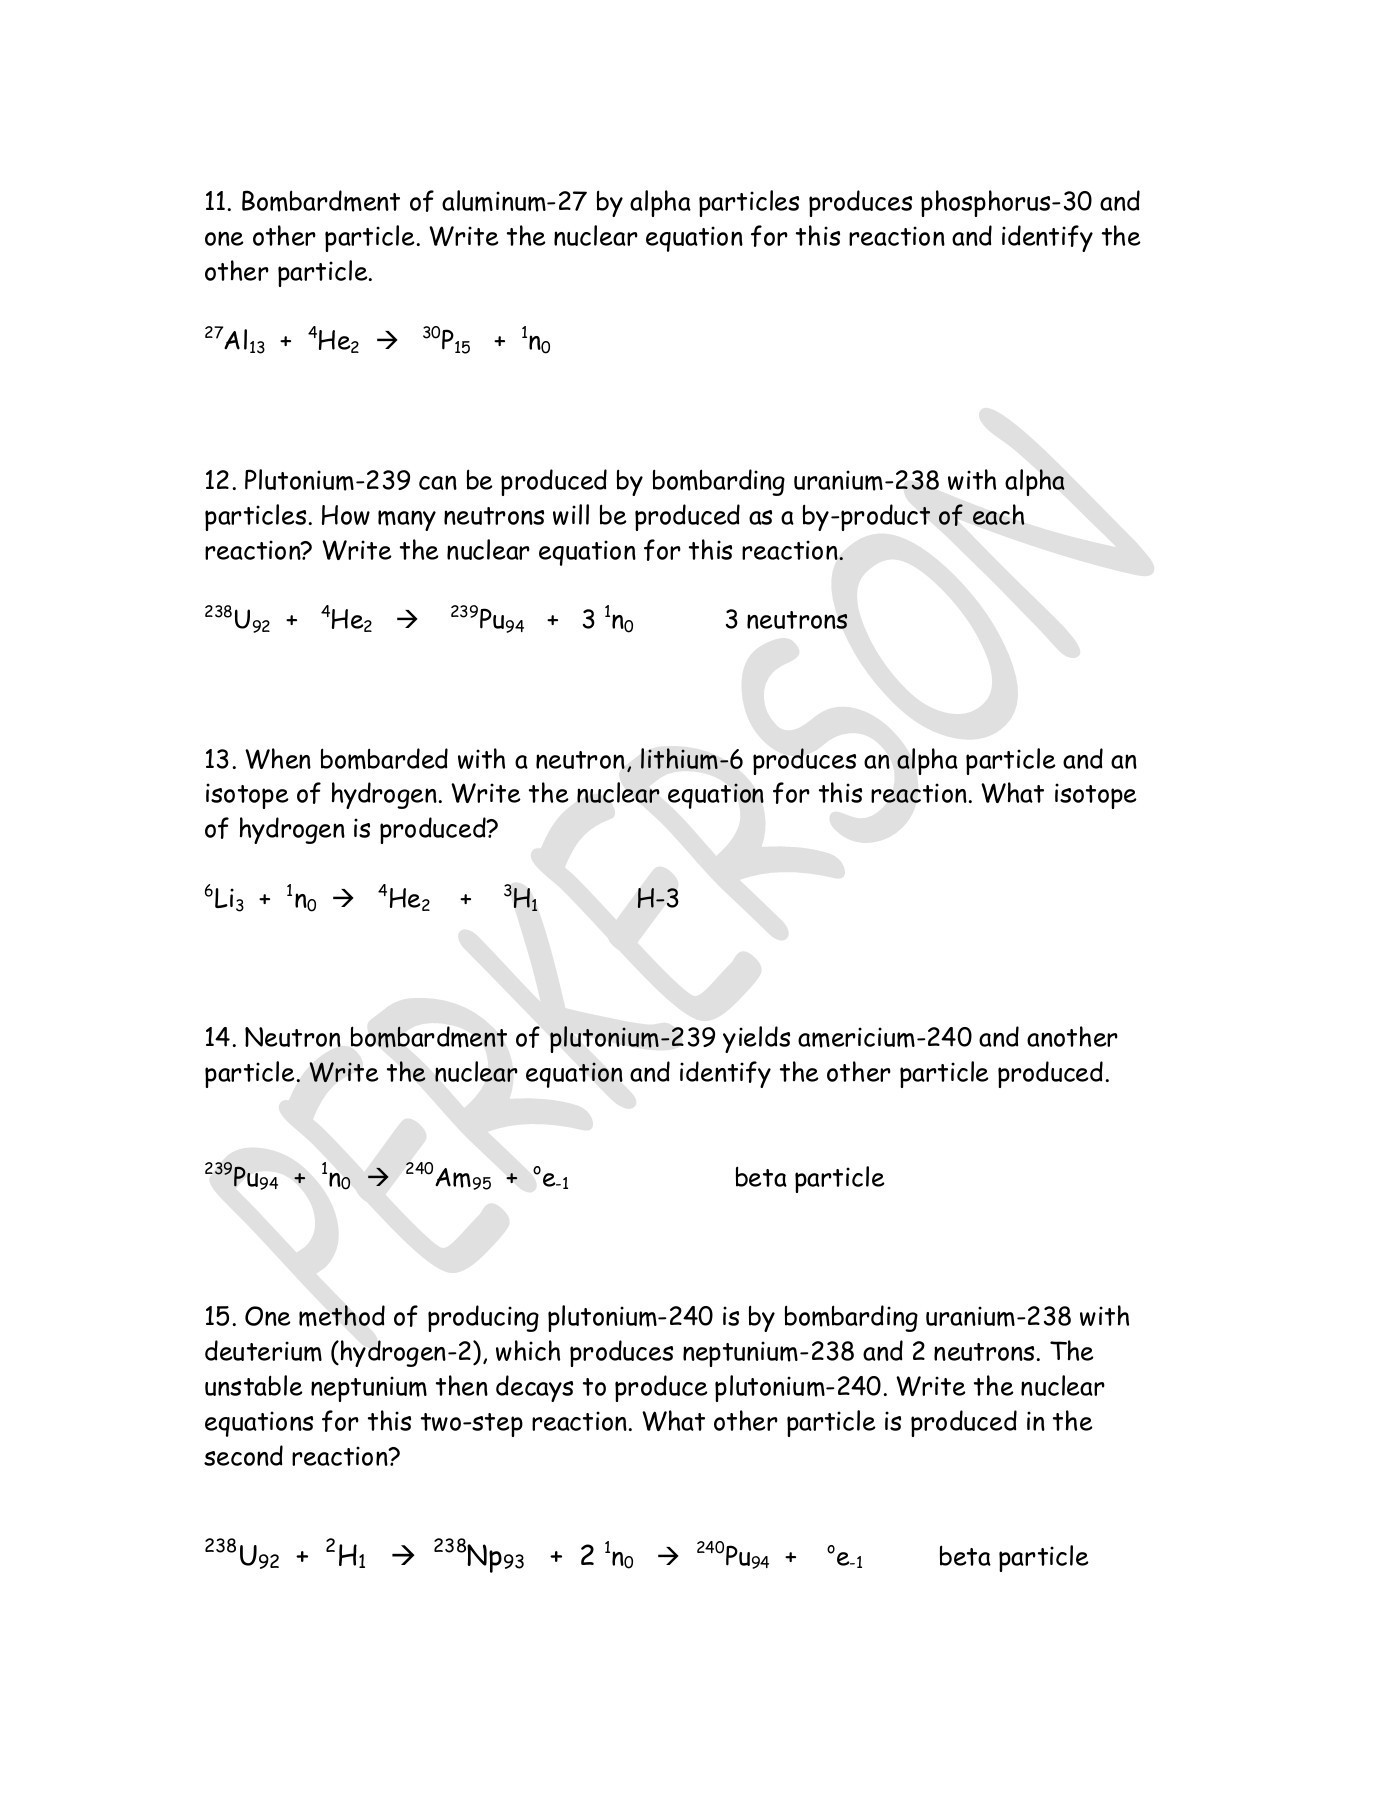 Radioactive Decay Worksheet Answers Nuclear Equations Worksheet Answers Typepad Pages 1 3